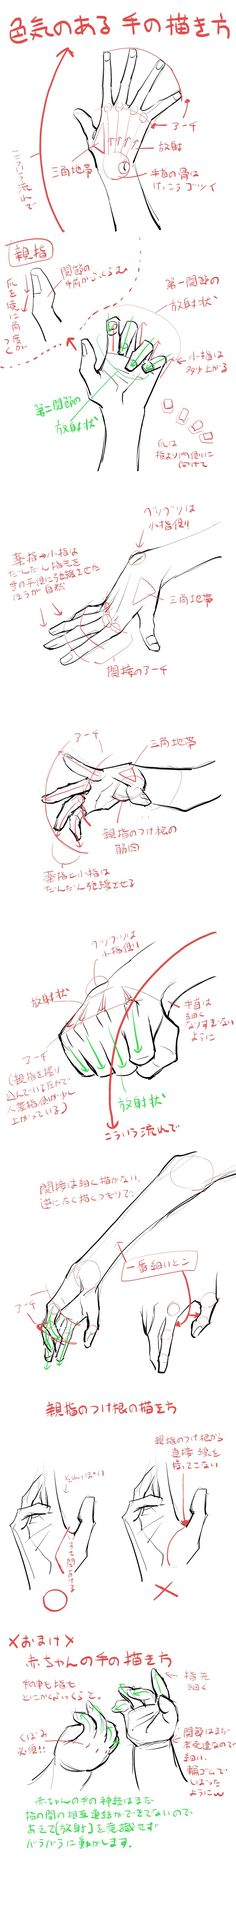 Exquisite Learn To Draw Manga Ideas Manga Drawing Techniques hand reference… Drawing Skills, Drawing Techniques, Drawing Tips, Figure Drawing, Drawing Sketches, Art Drawings, Drawing Hands, Drawing Art, Manga Drawing